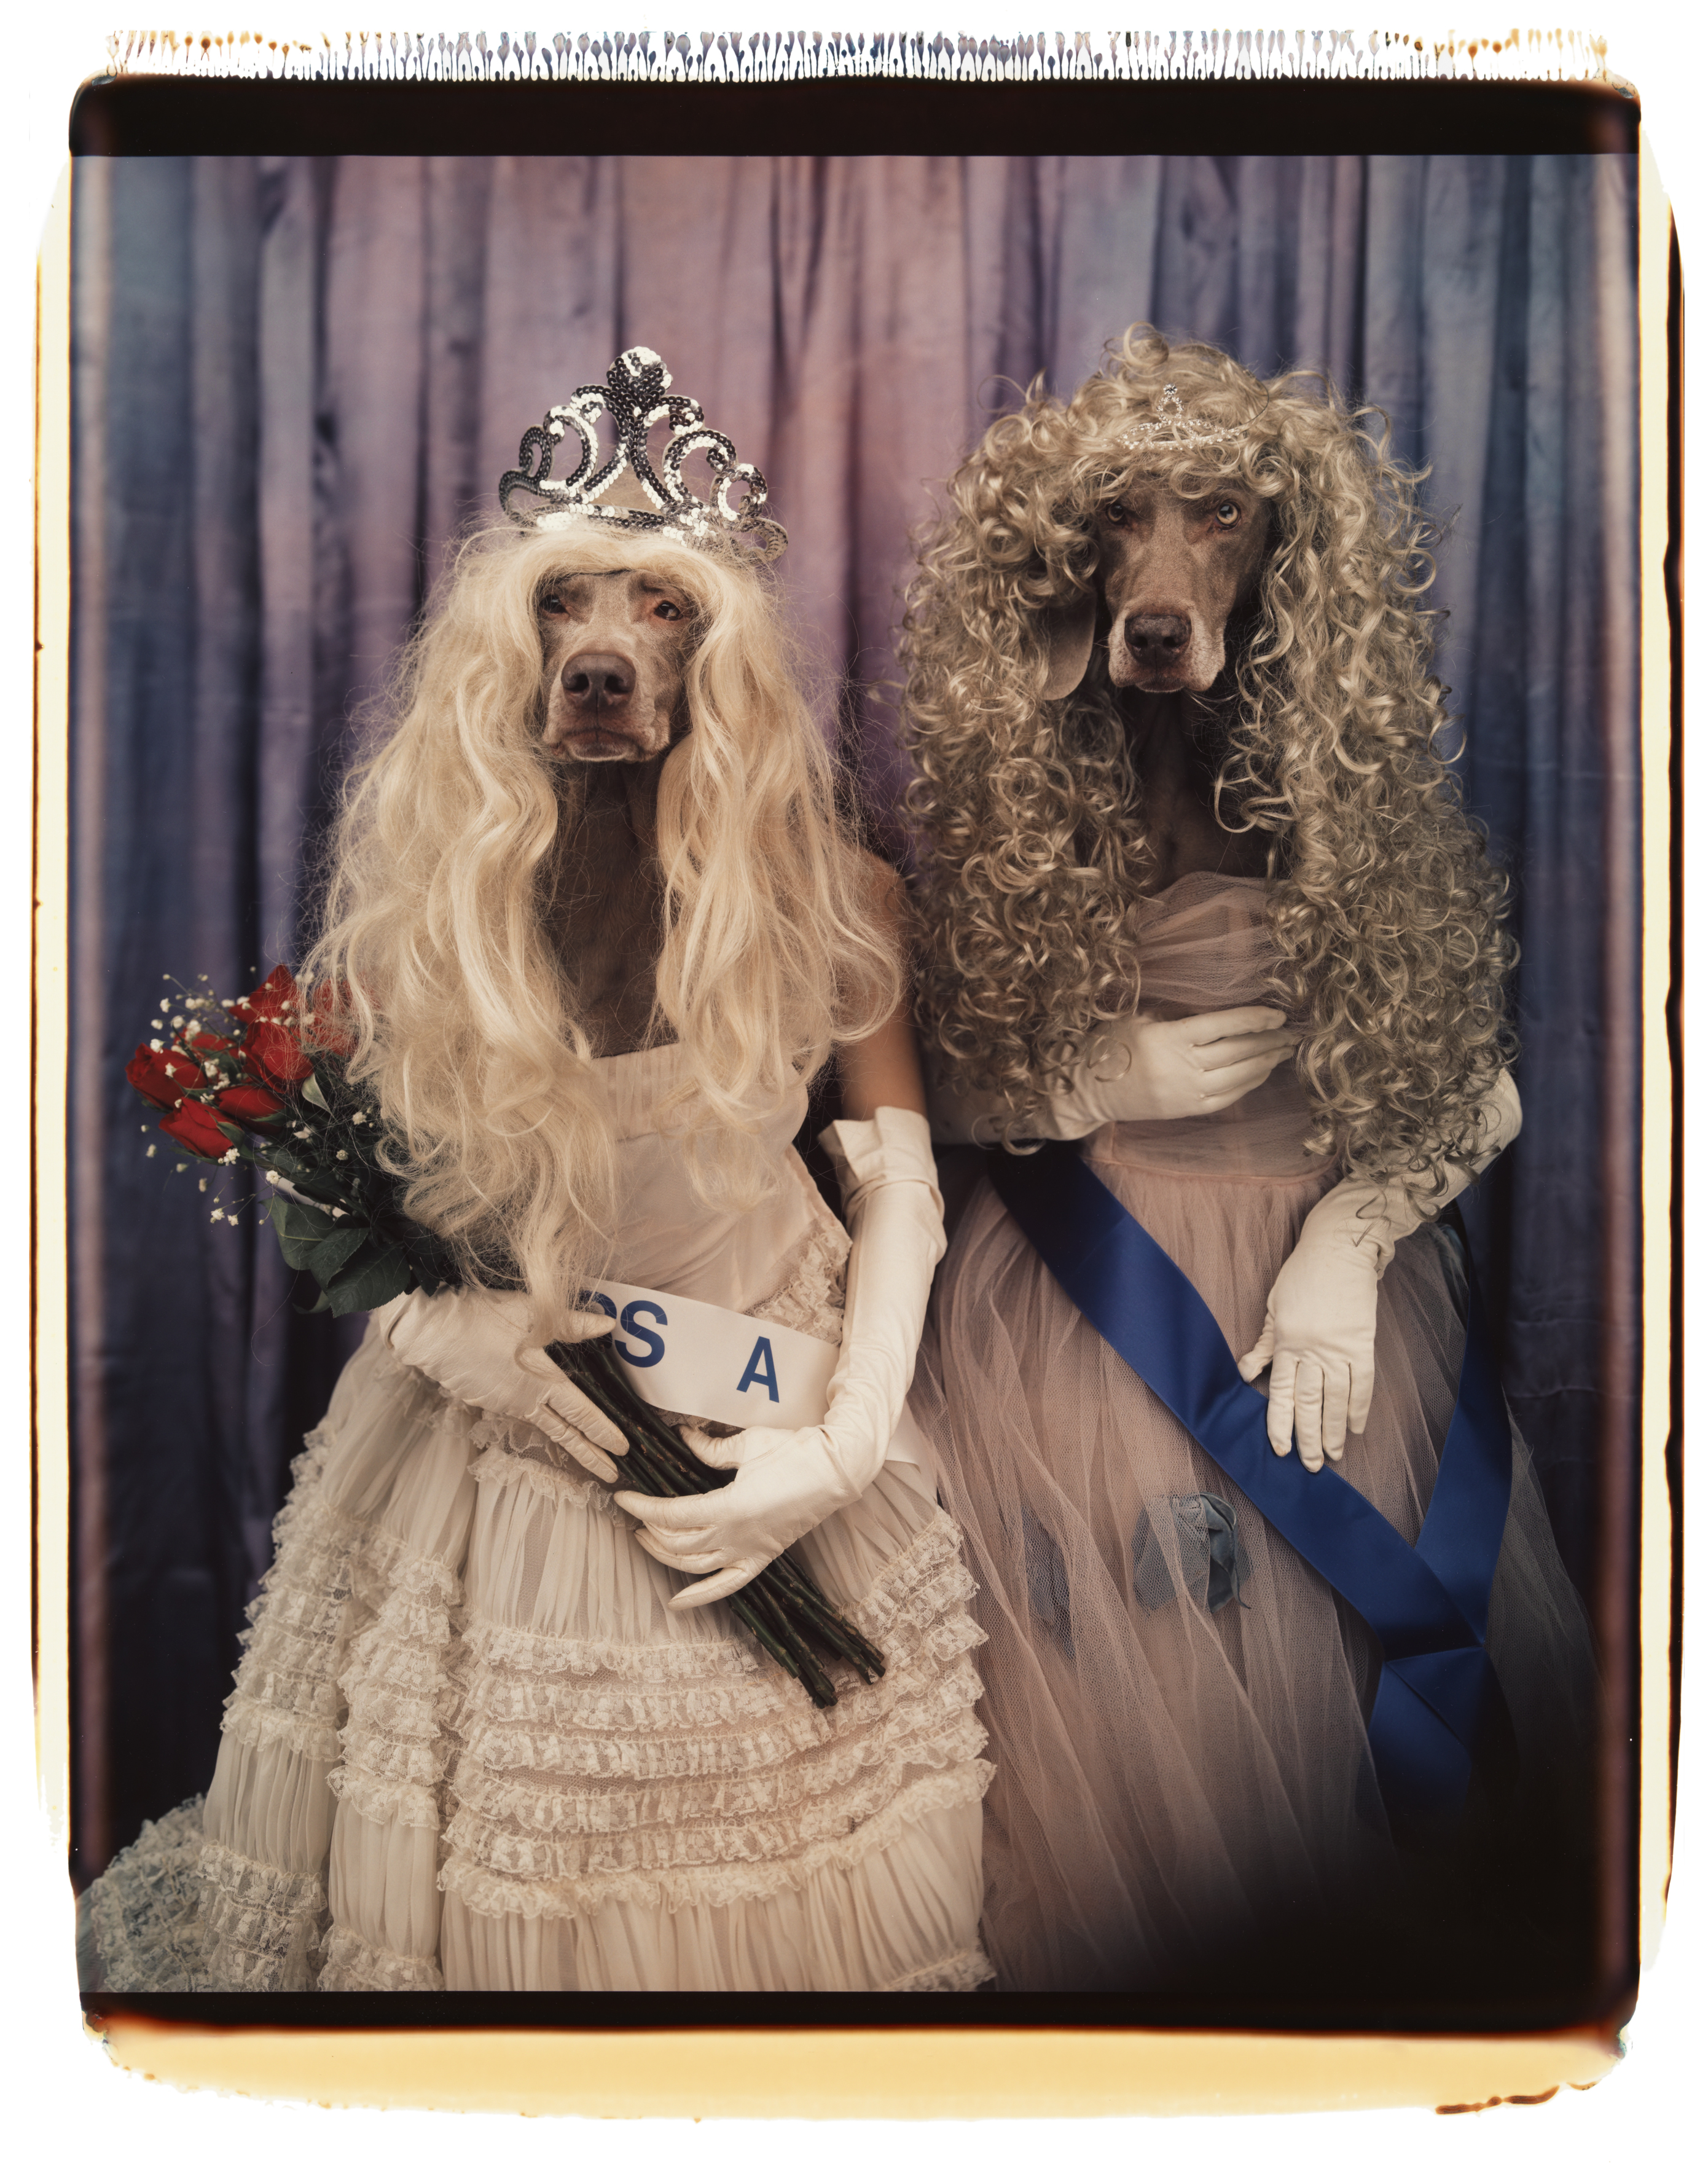 William Wegman: Miss & Misses, 1995 (Seite 178) © William Wegman / courtesy Schirmer/Mosel